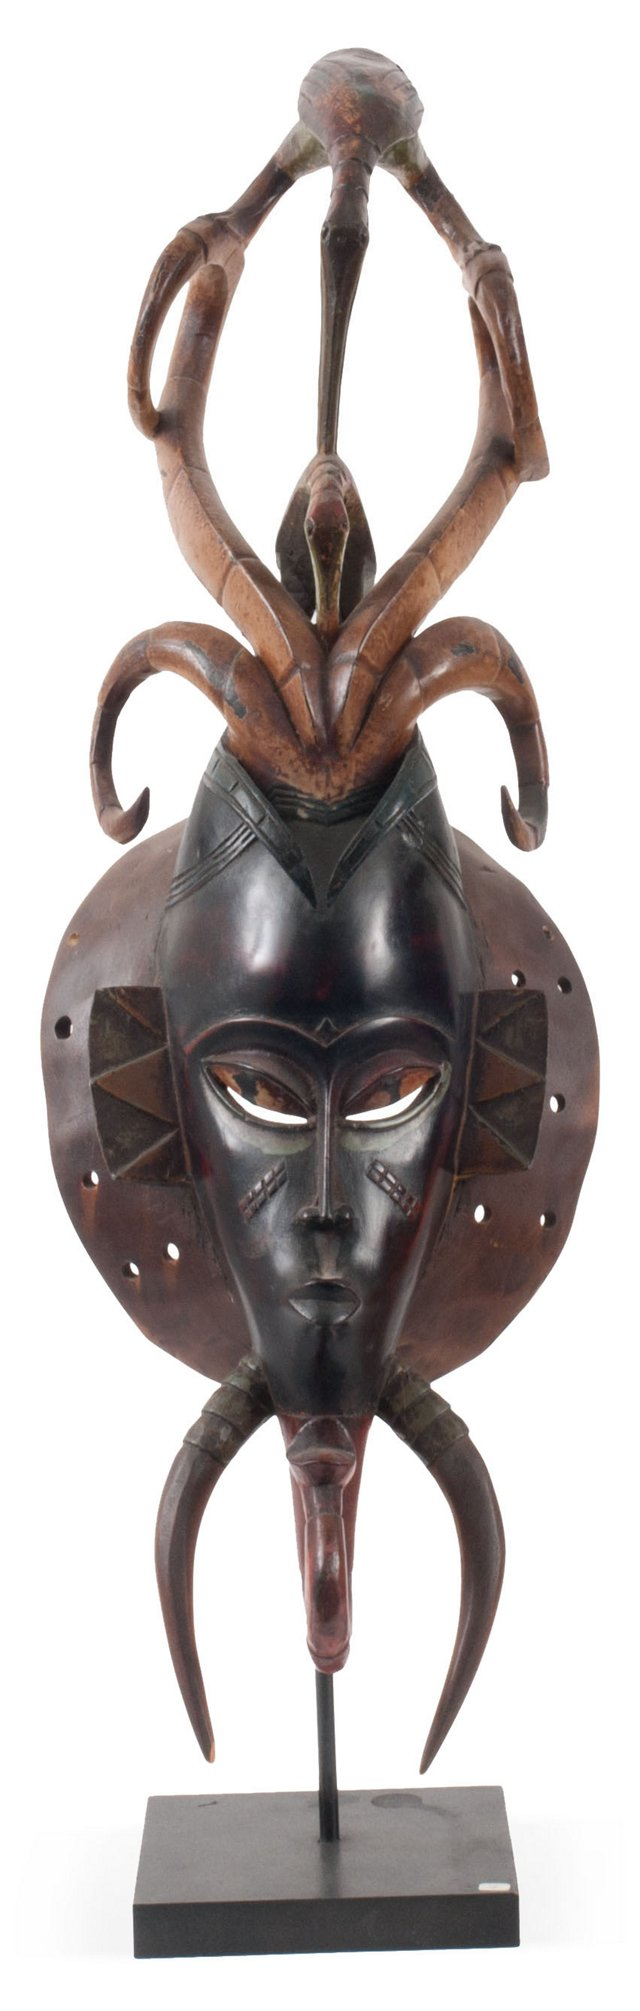 South African Mask II